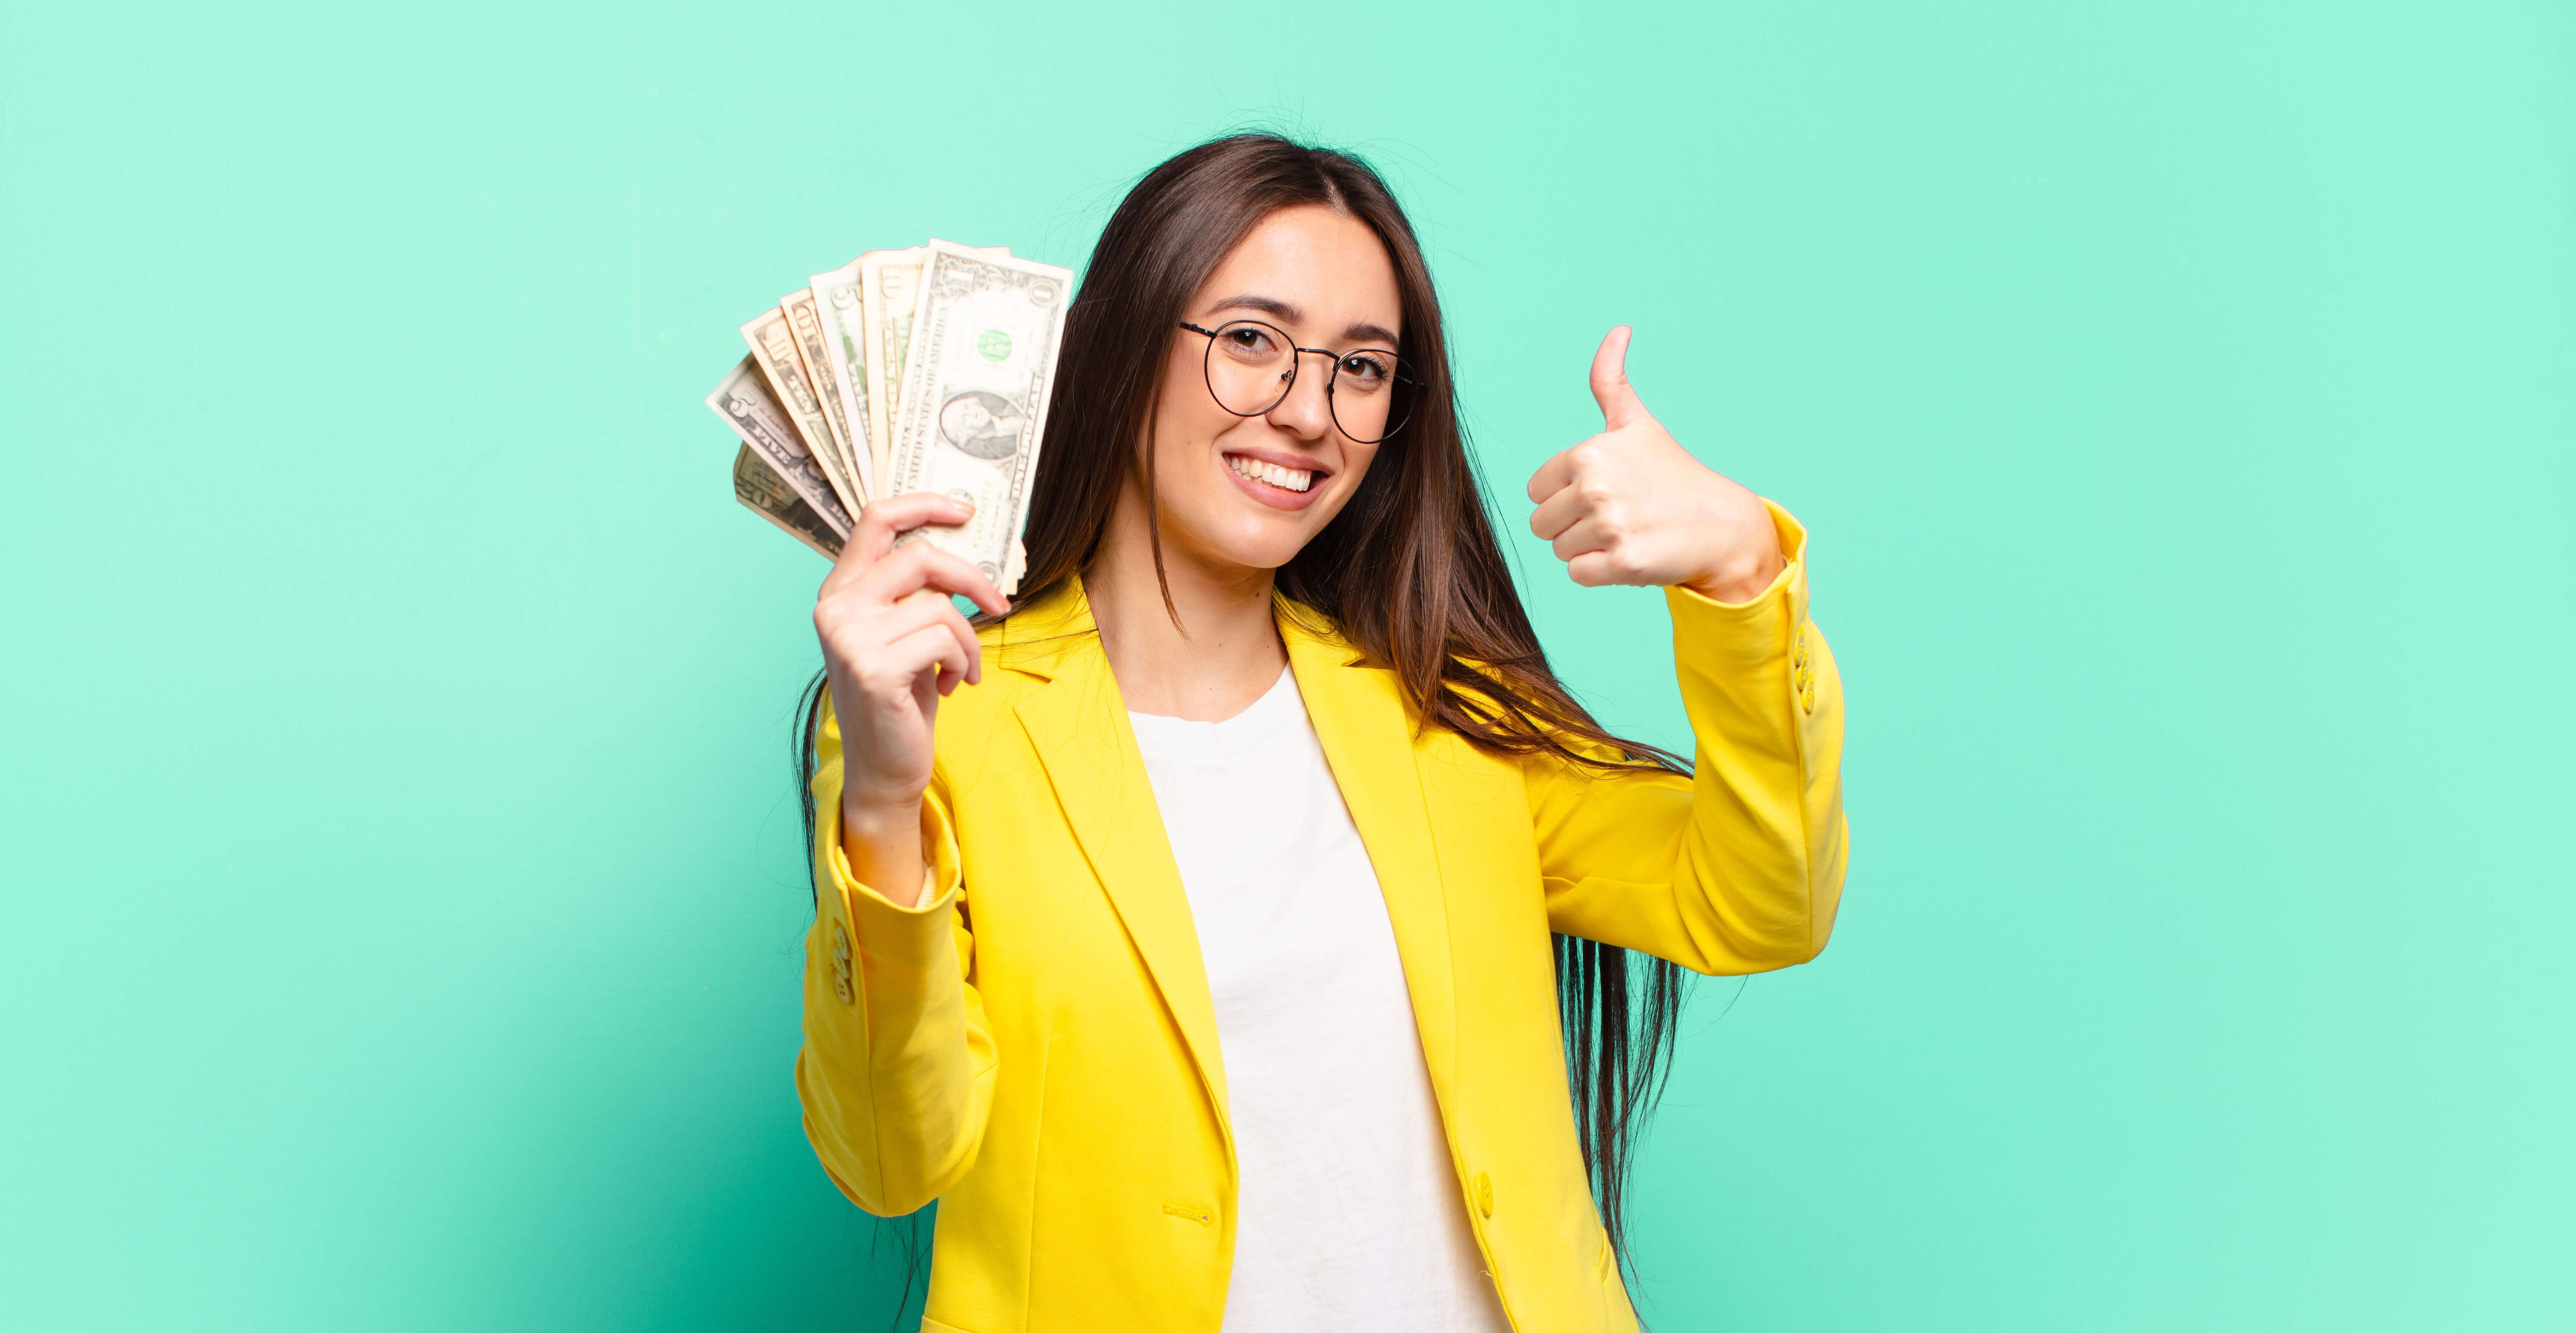 Same Day Payday Loans Fast Payout